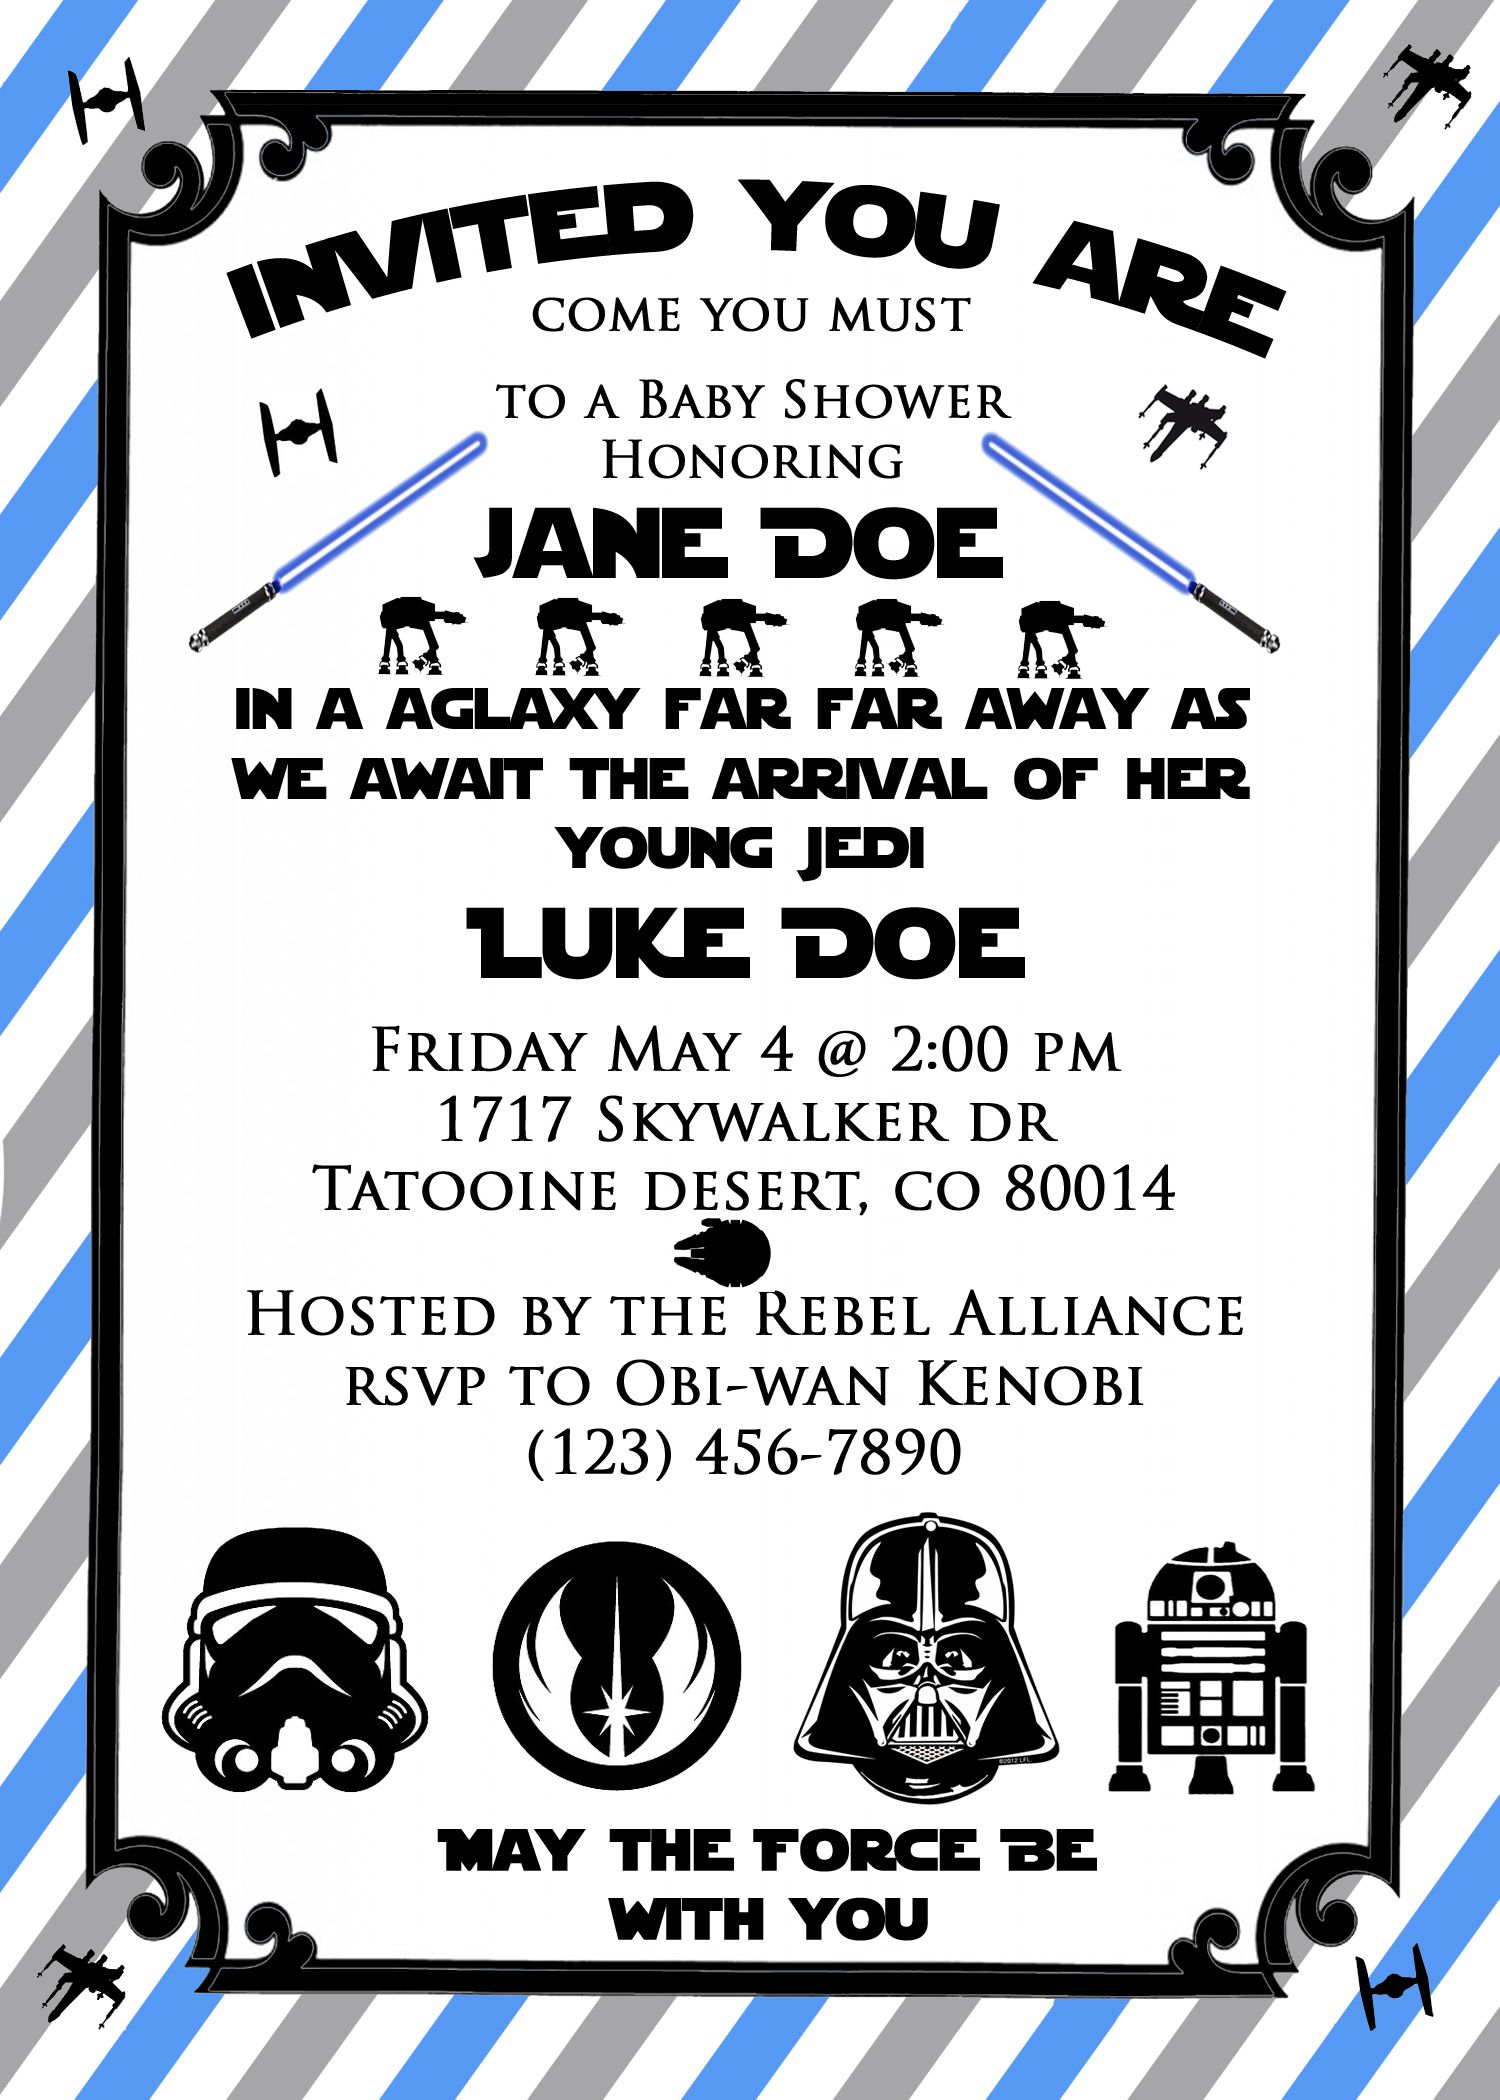 Star Wars Baby Shower Invite! So Cute For A Star Wars Themed Baby Shower Or